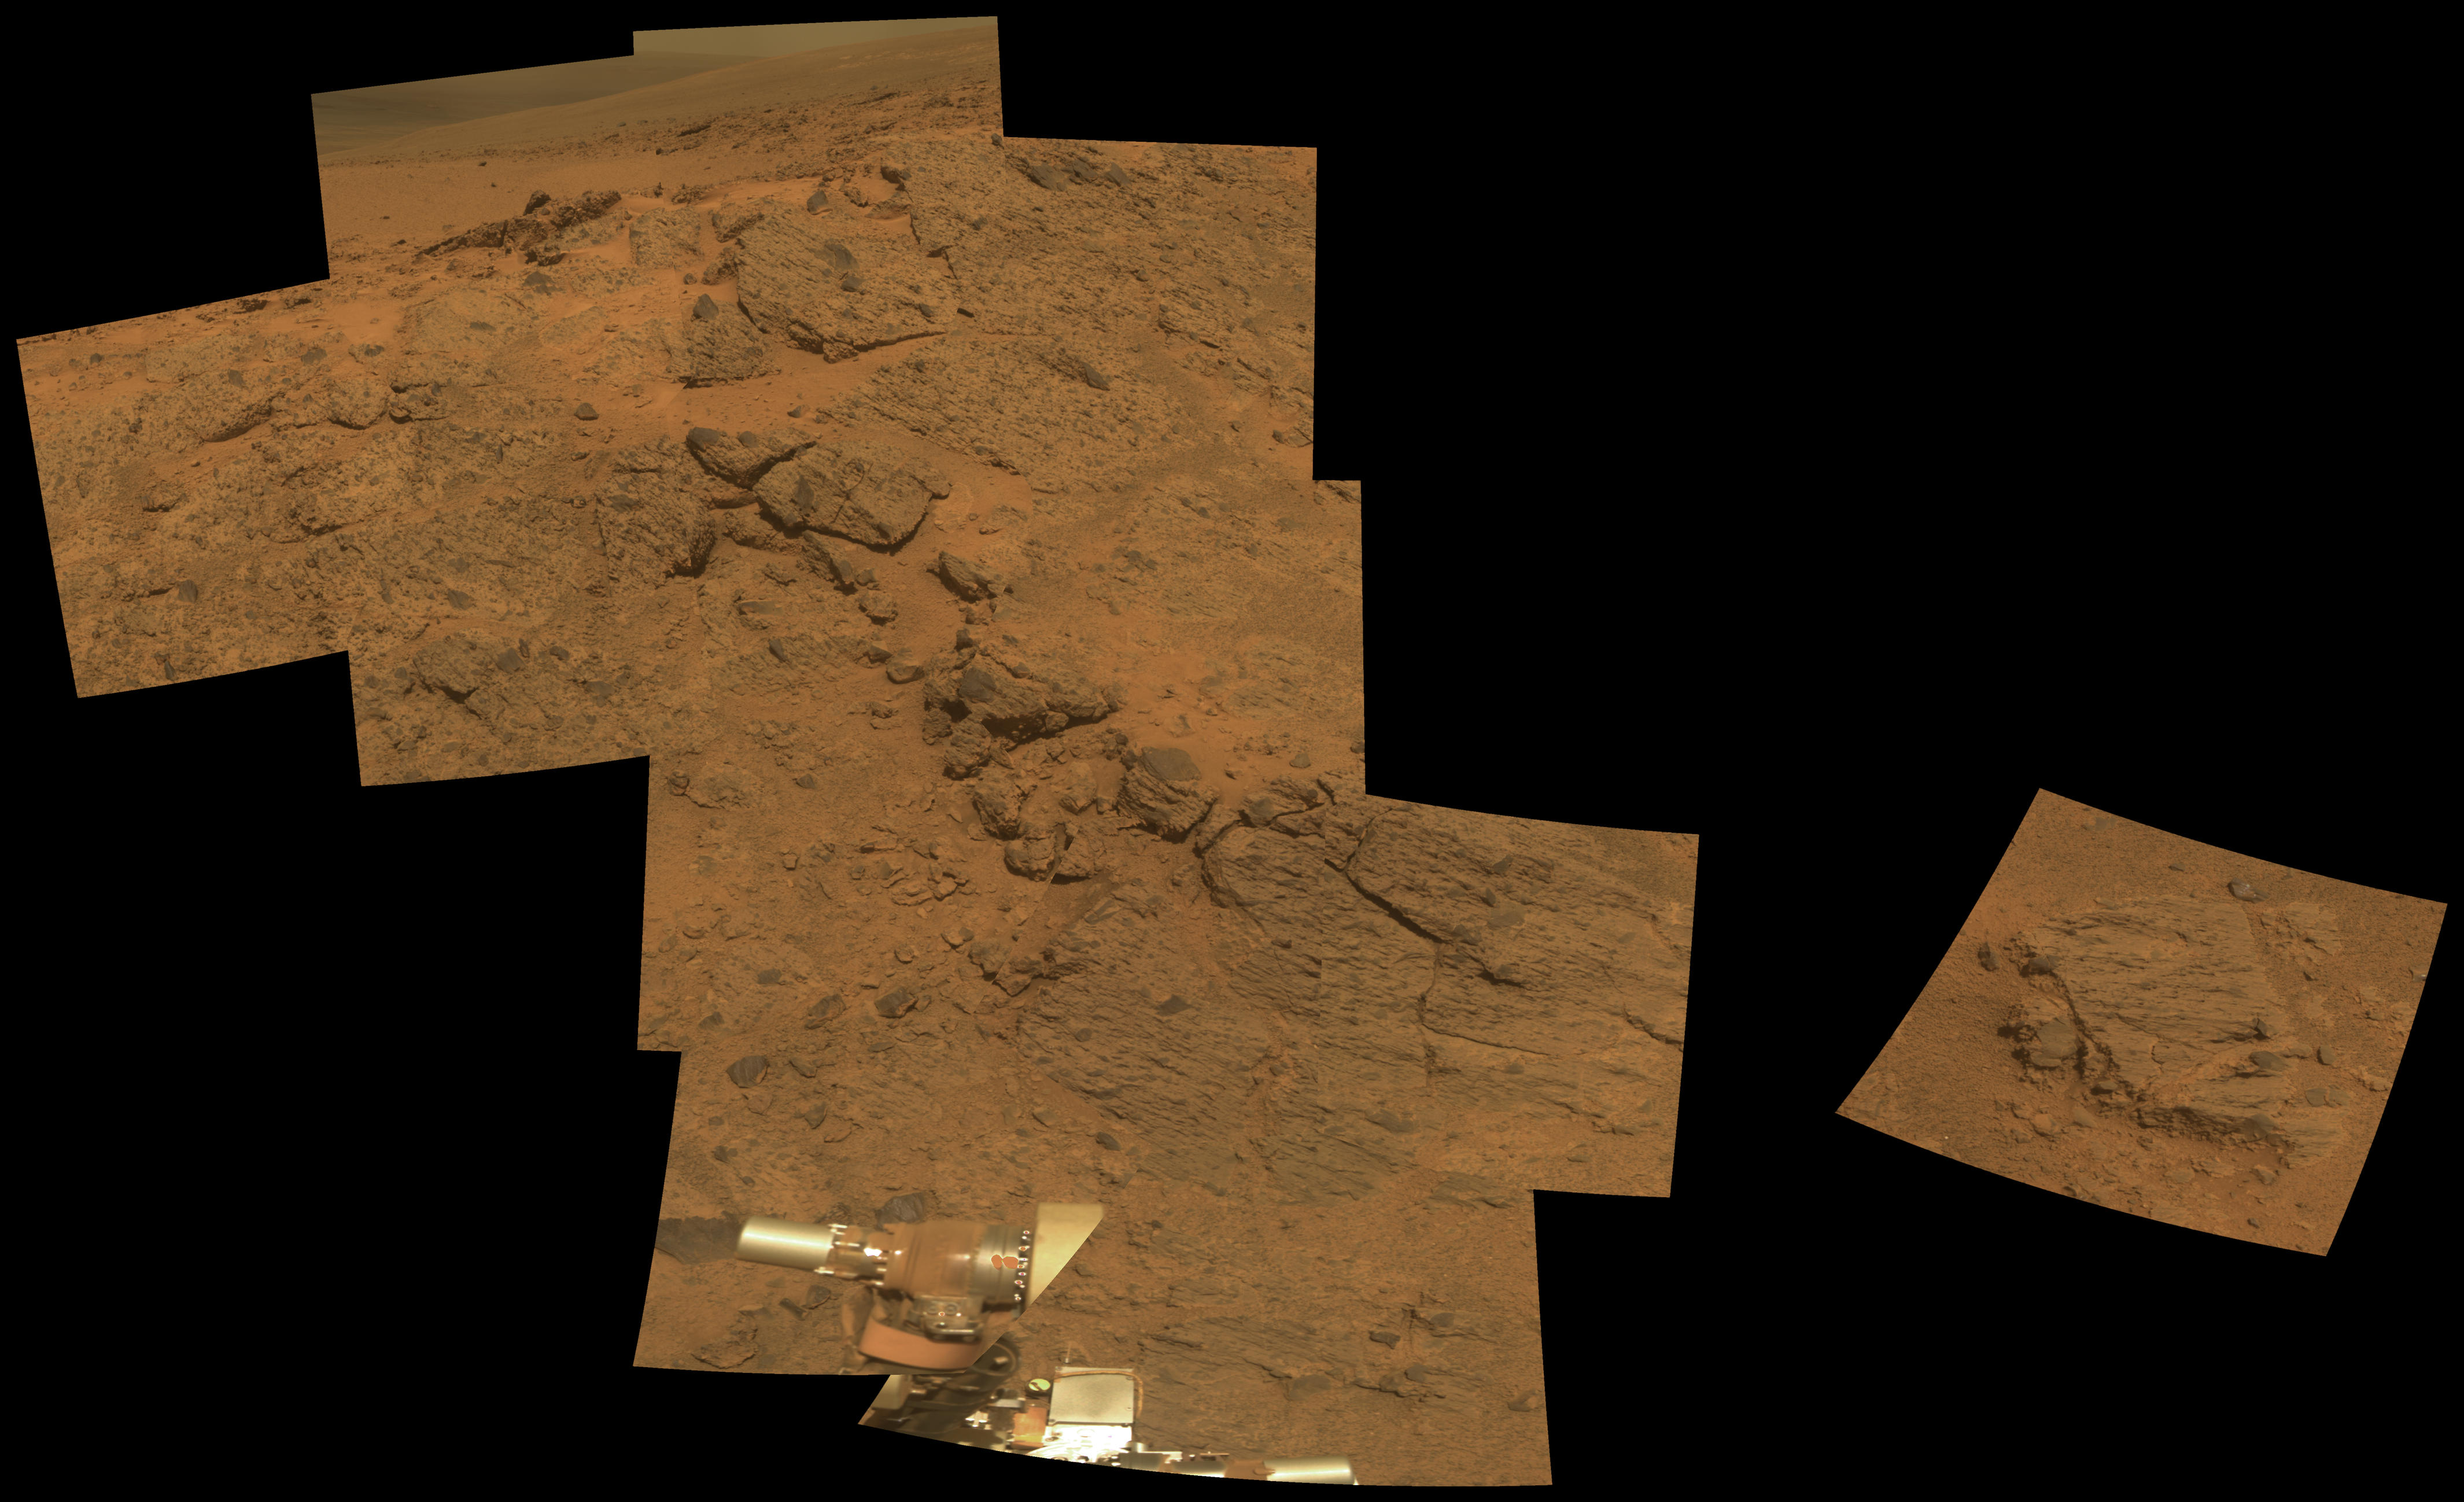 Outcrop on 'Murray Ridge' Section of Martian Crater Rim